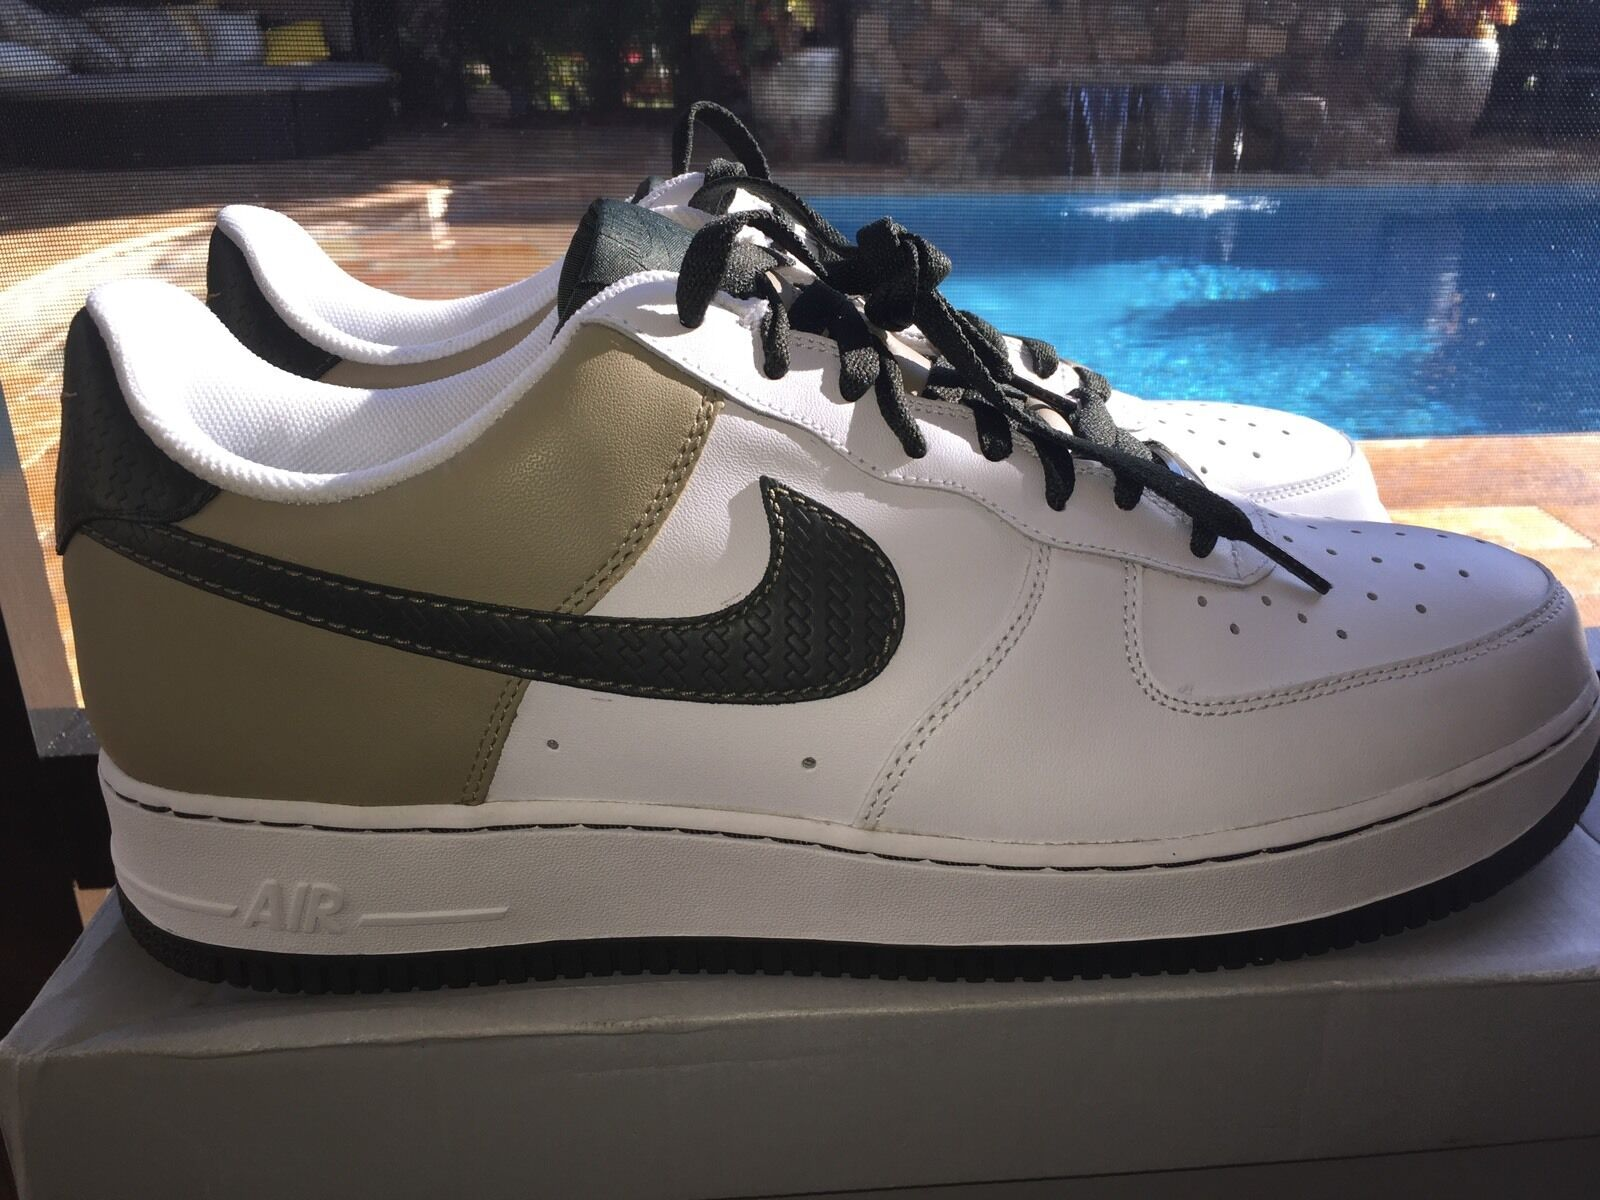 Nike Air Force 1 Low Whit/Green/Tan Ds Sz 14